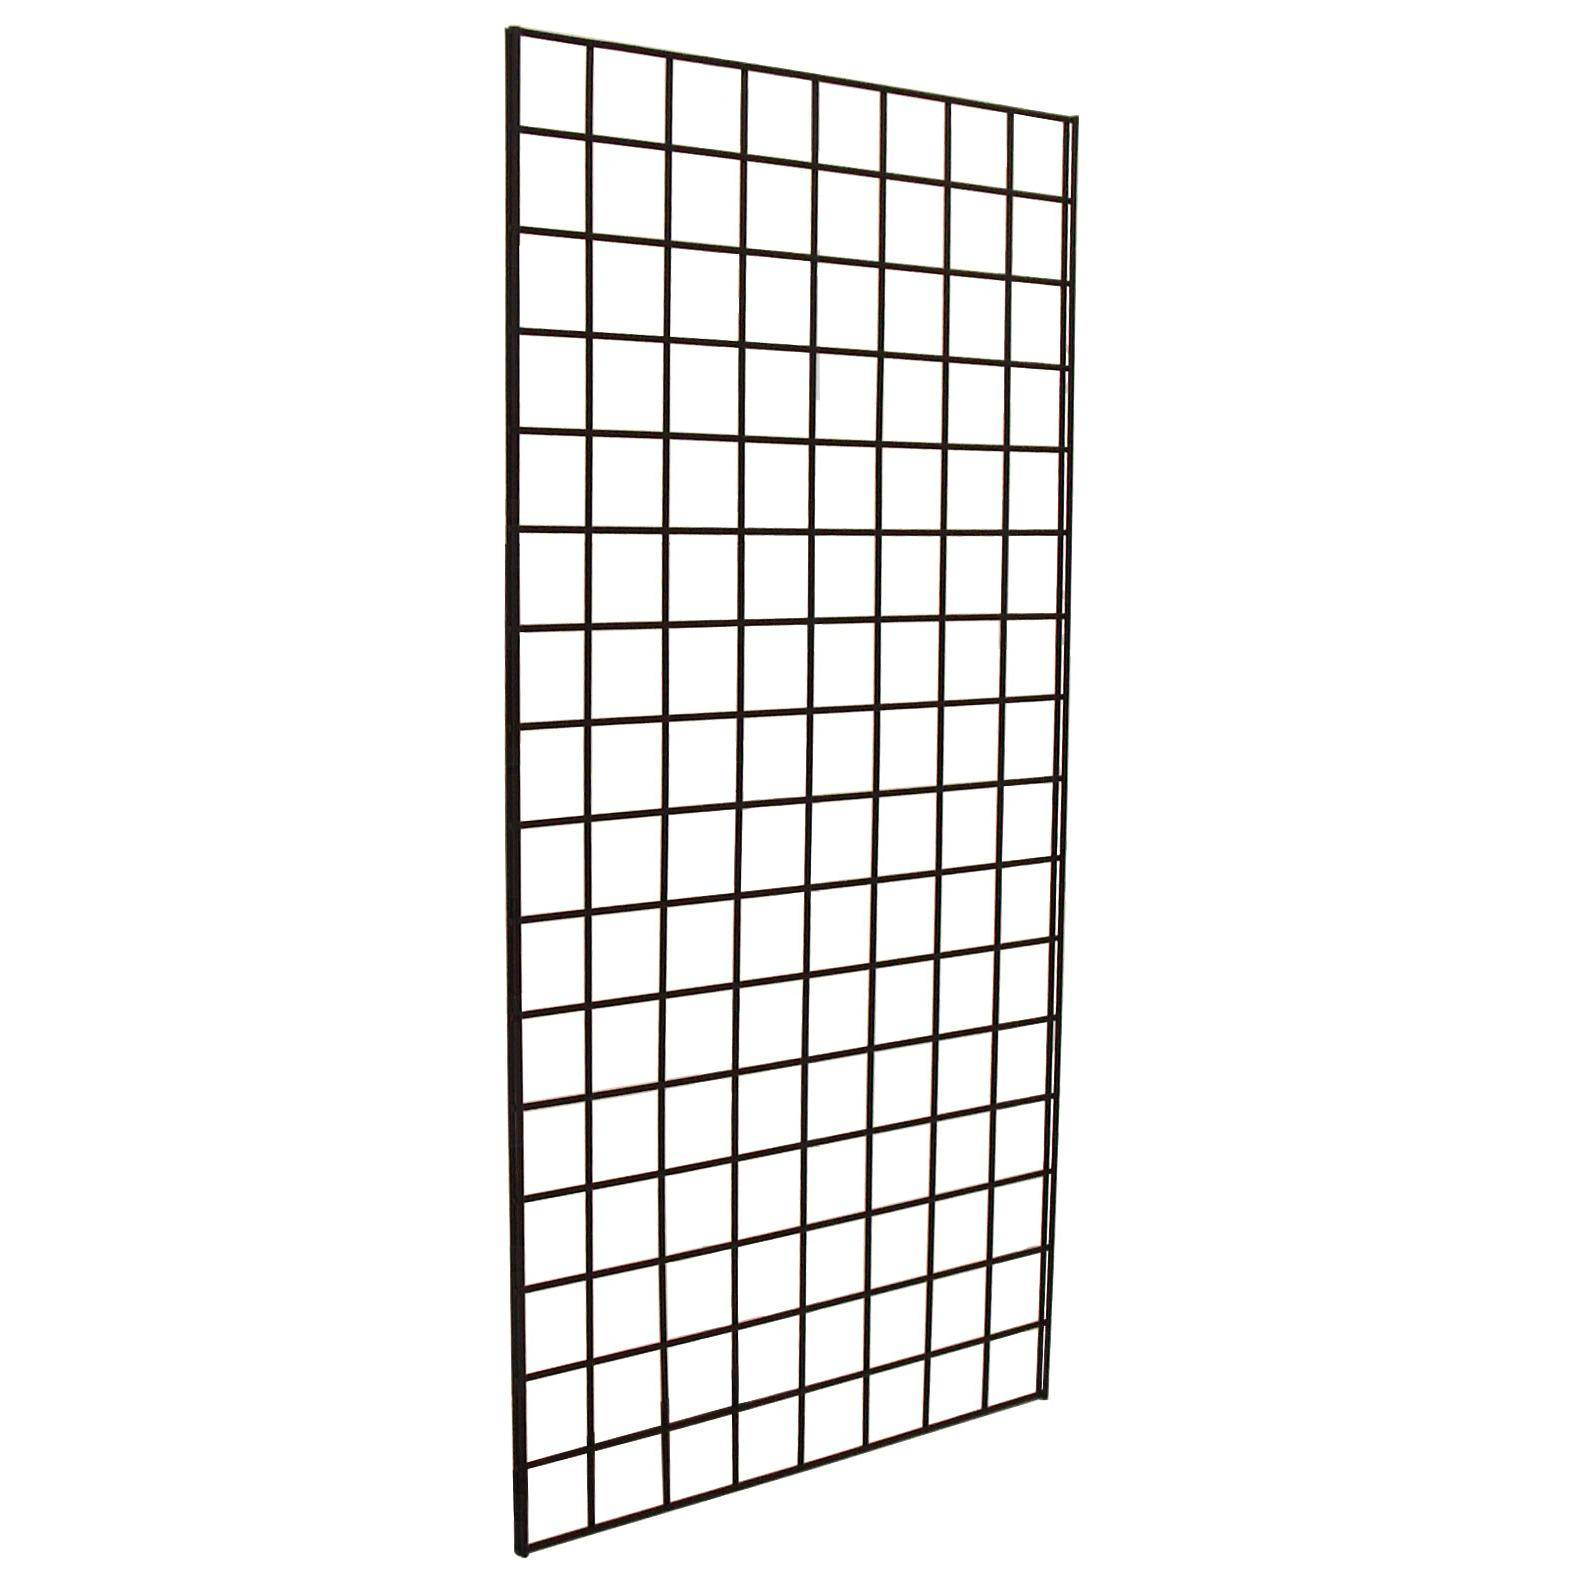 Gridwall Panels Grid Display Panels And Accessories